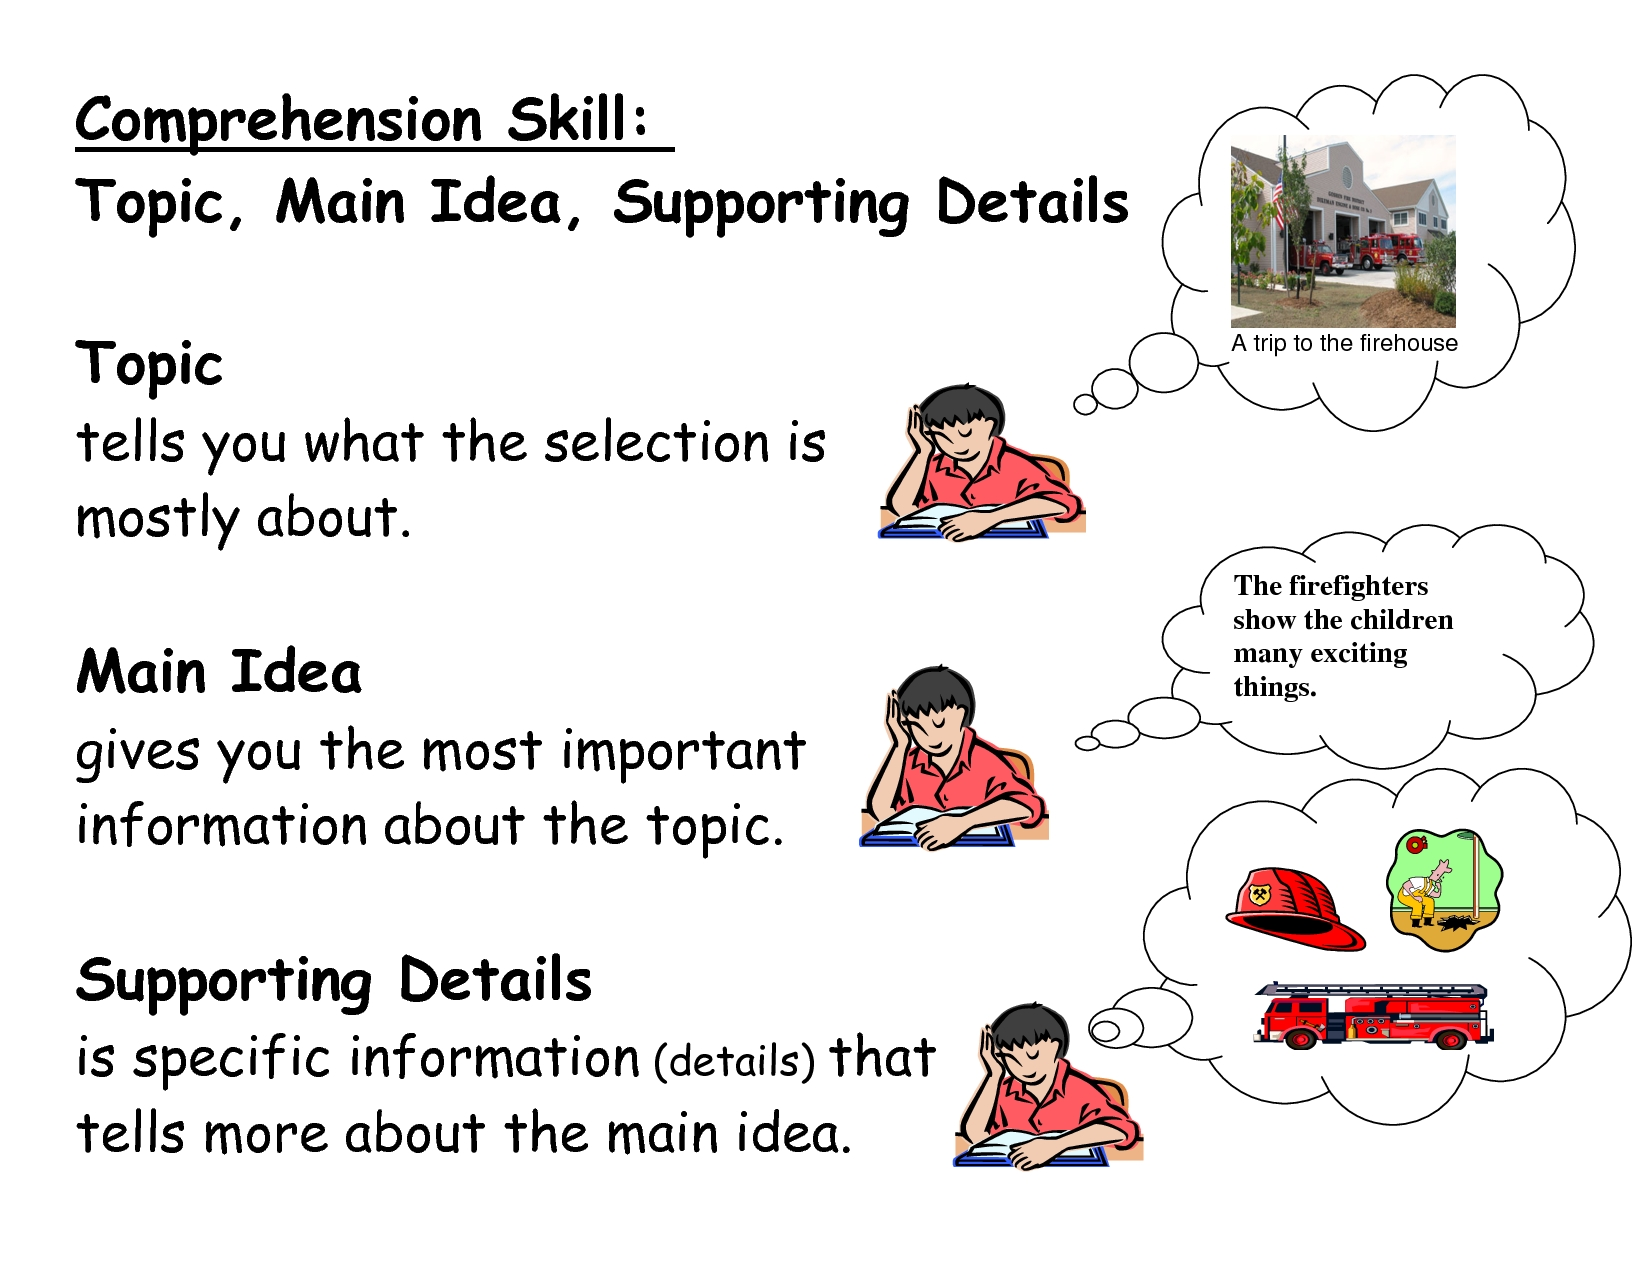 10 Stylish What Is The Main Idea main idea lessons tes teach 1 2020